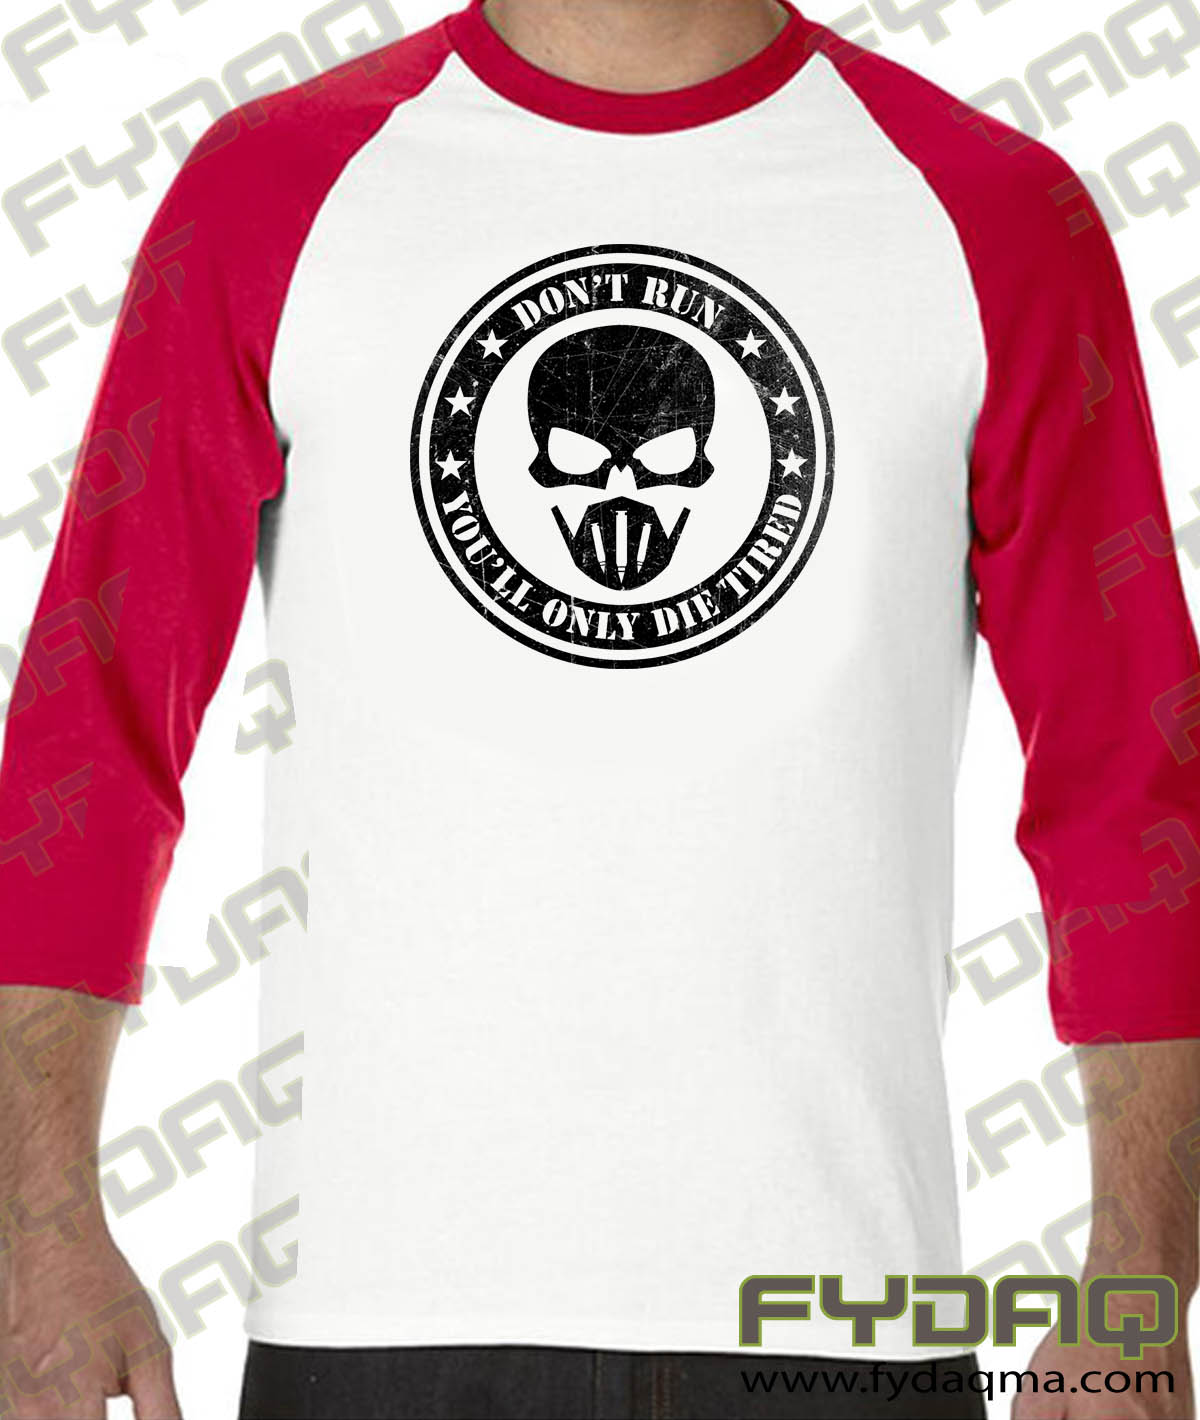 Don't-run-you'll-only-die-tired-raglan-white-red-fydaq